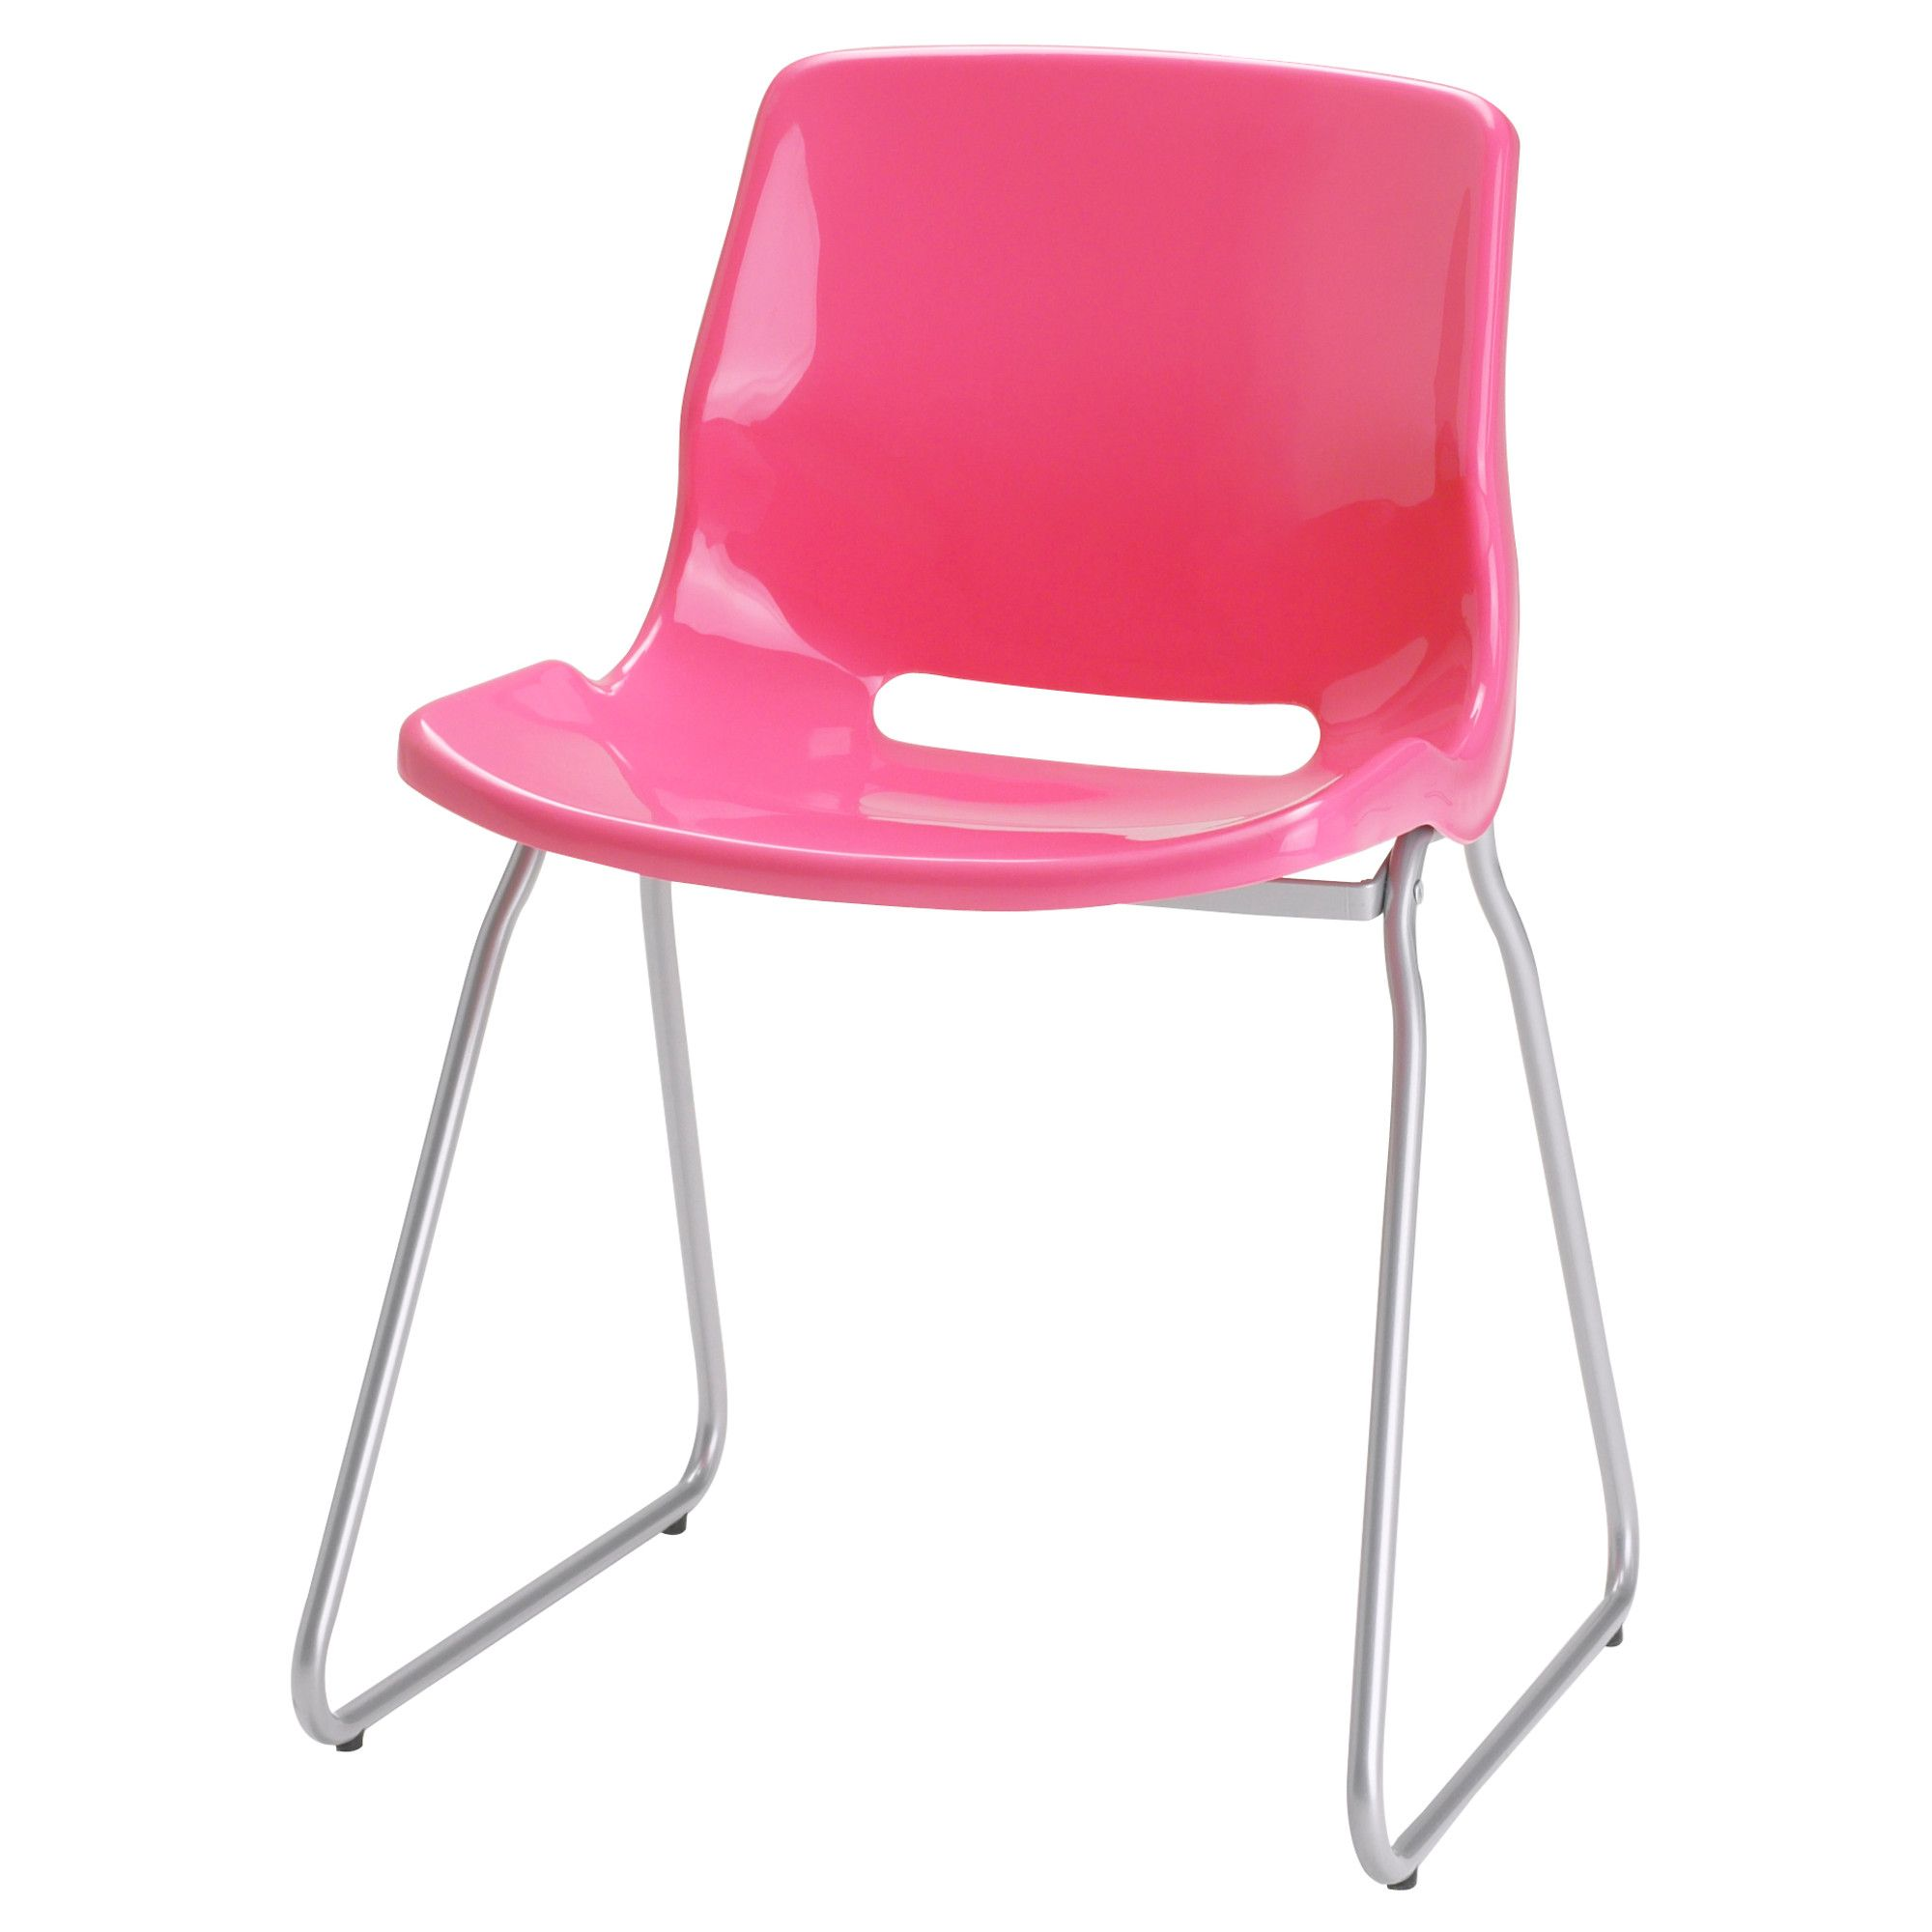 Ikea Modern Visitor Chair Pink Home Office New